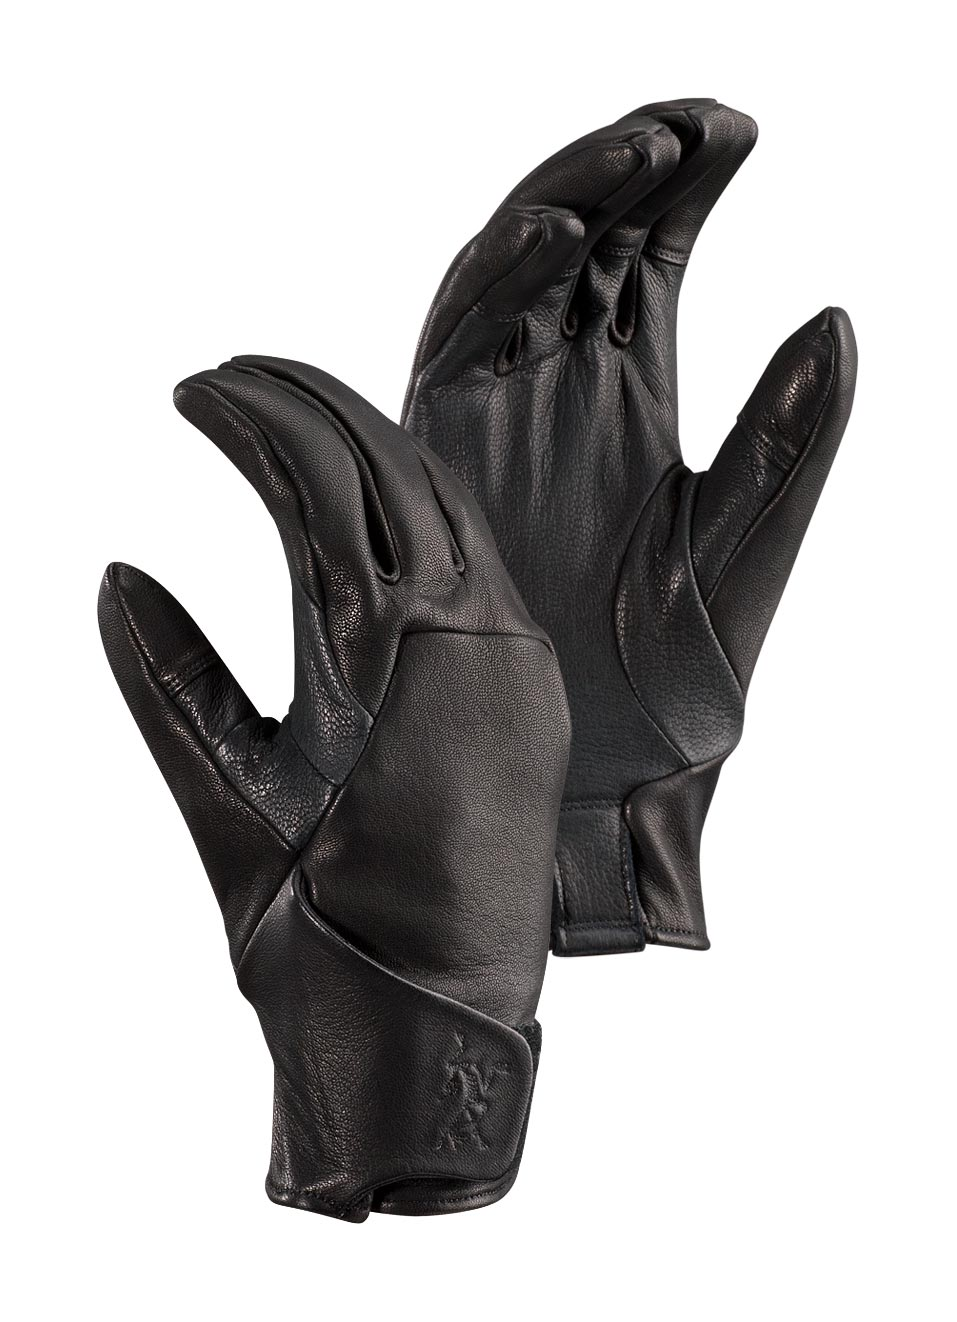 Arcteryx Men Black/Deep Dusk Tactician AR Glove